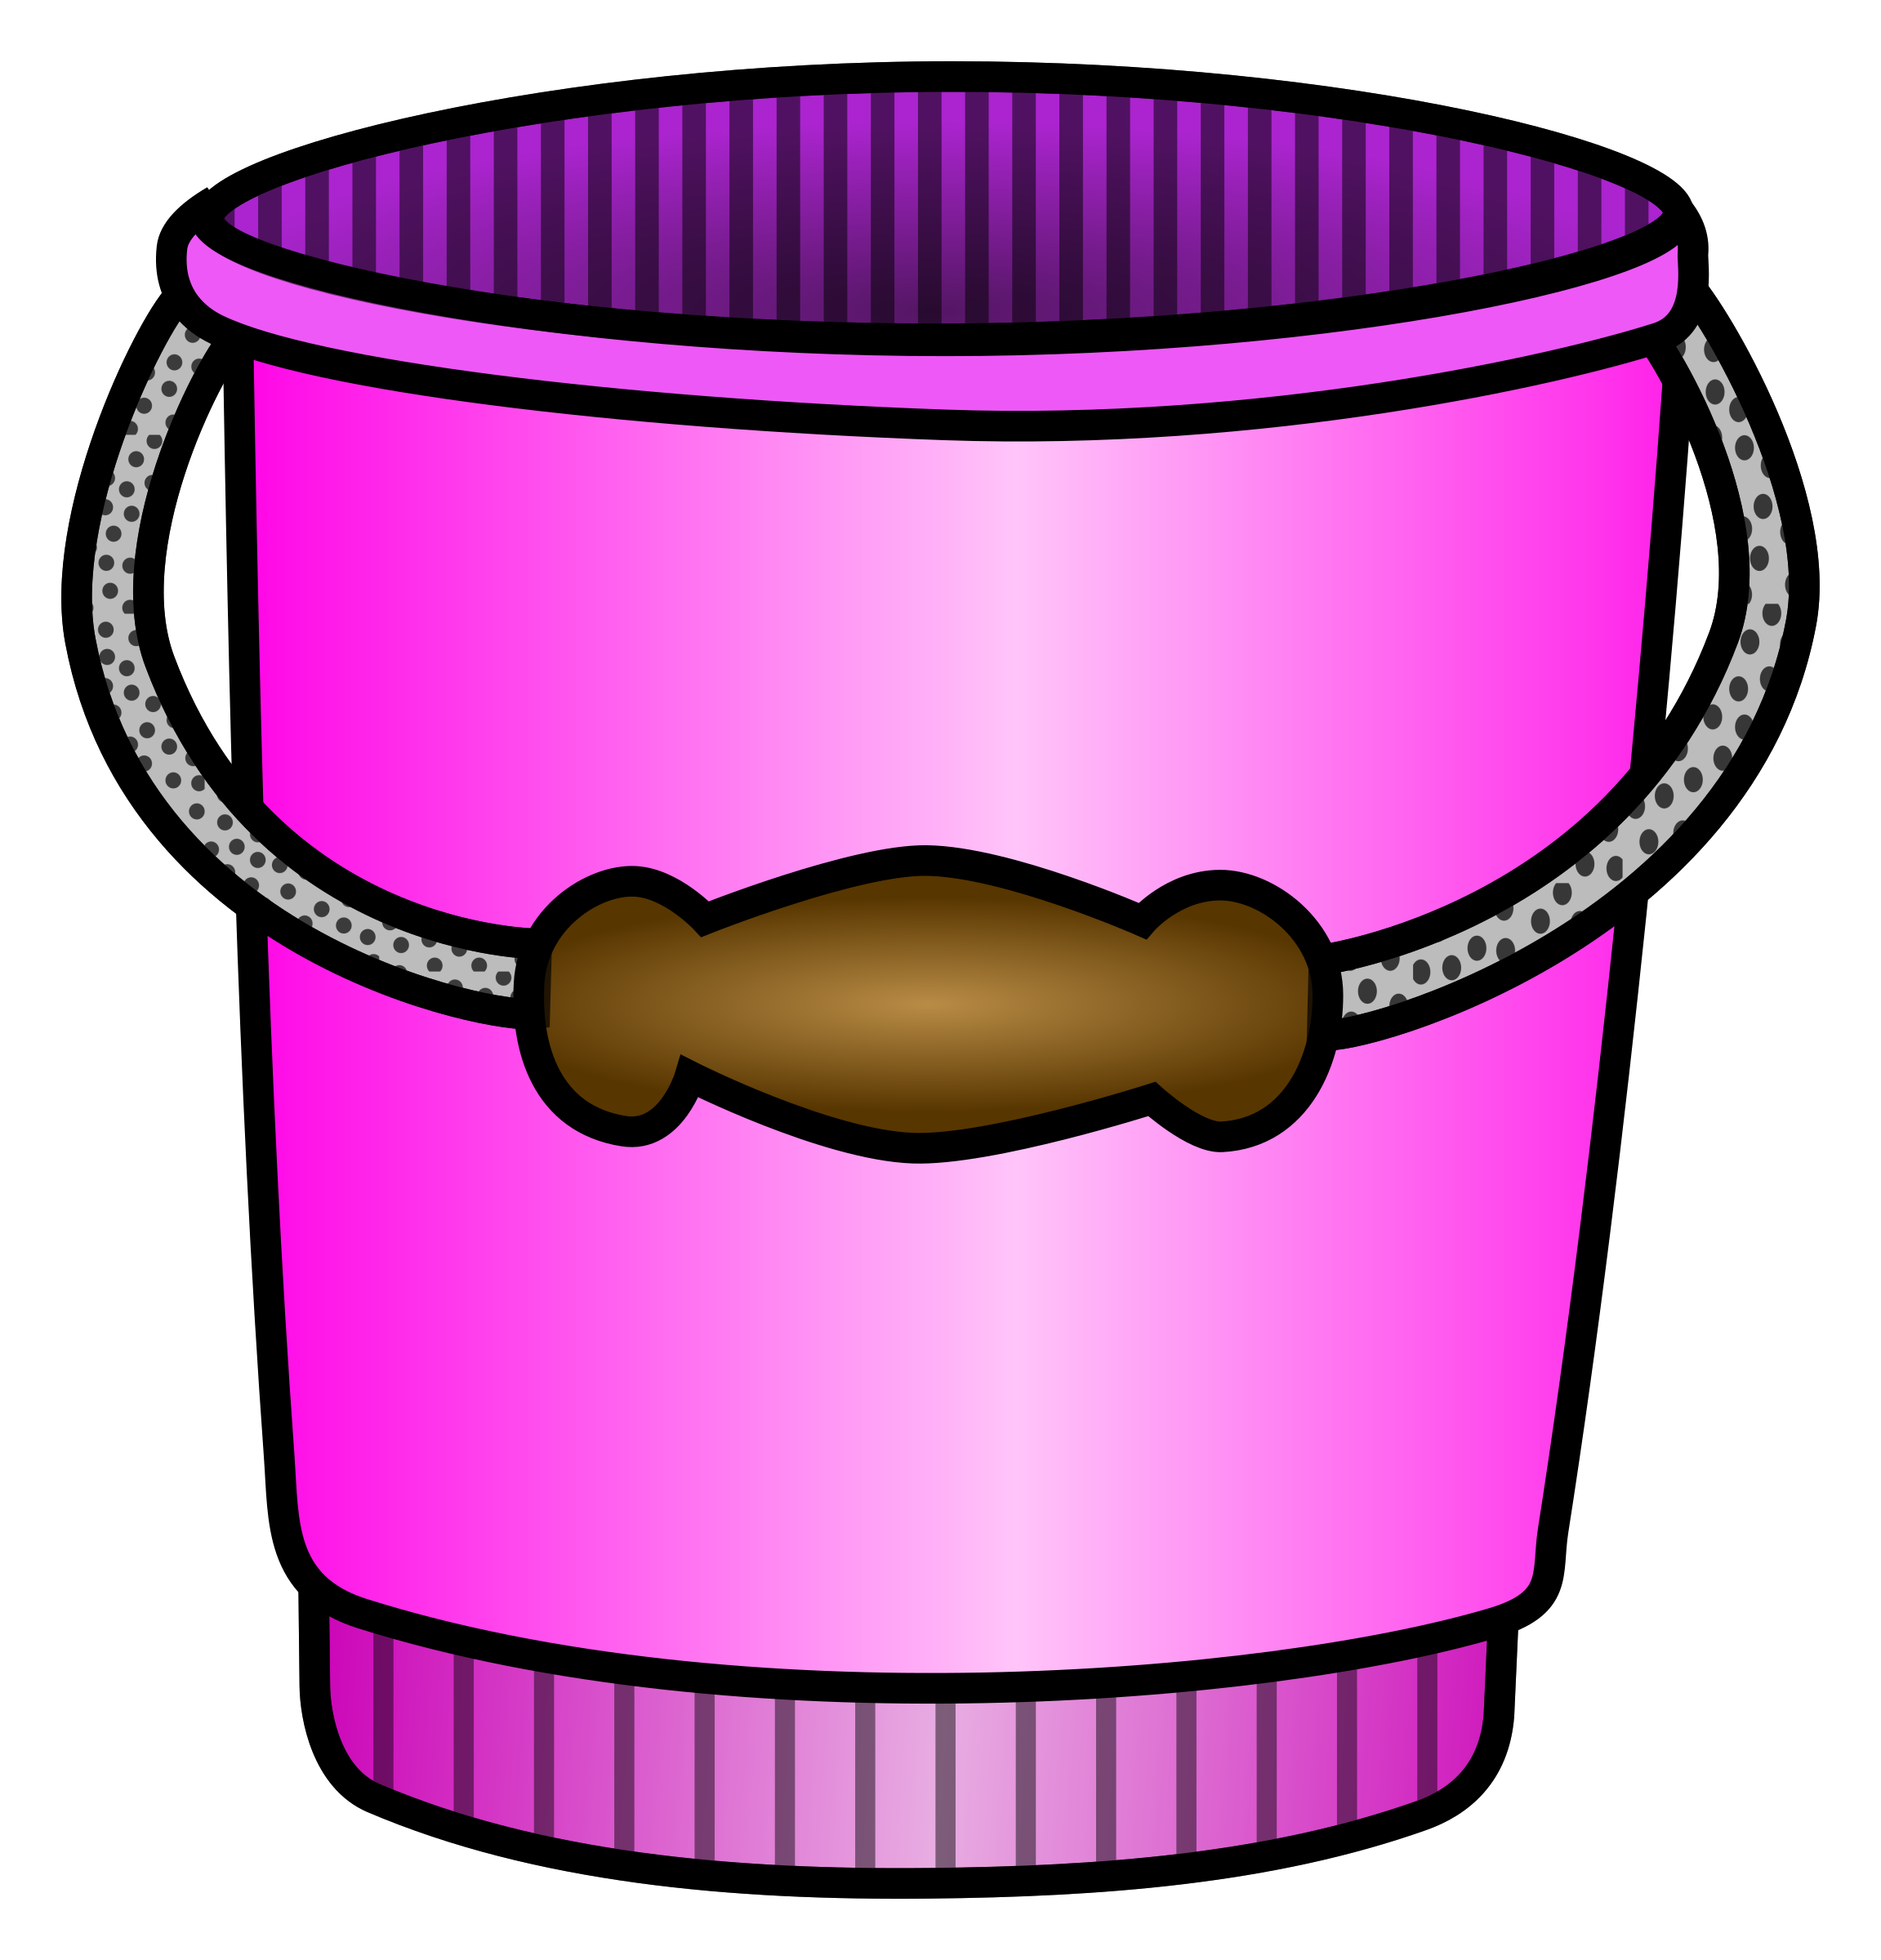 Coloured big image png. Purple clipart bucket